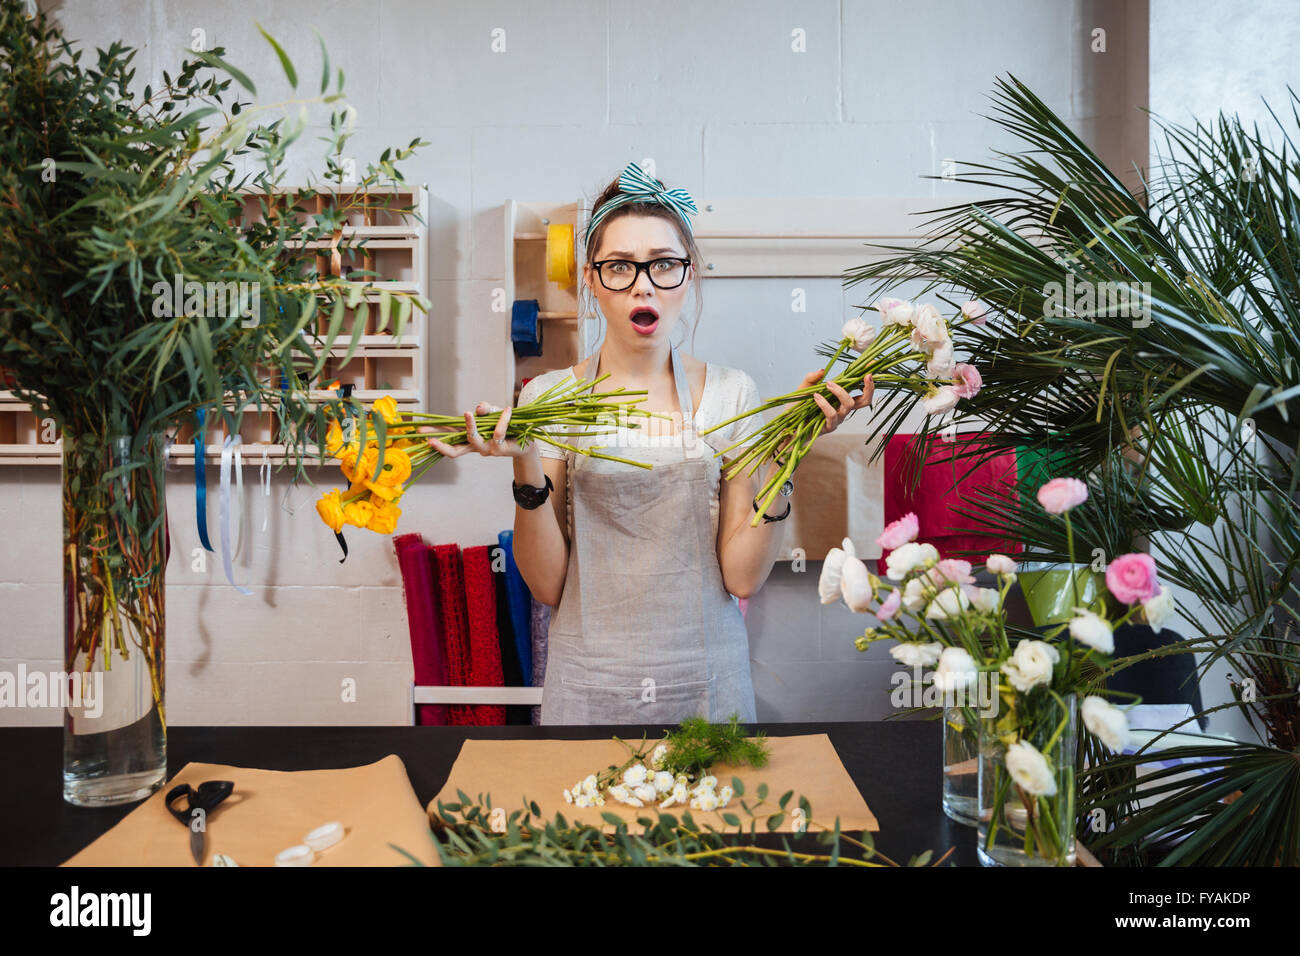 Amazed shoked young woman florist designing bouquet and holding two bunches of flowers - Stock Image